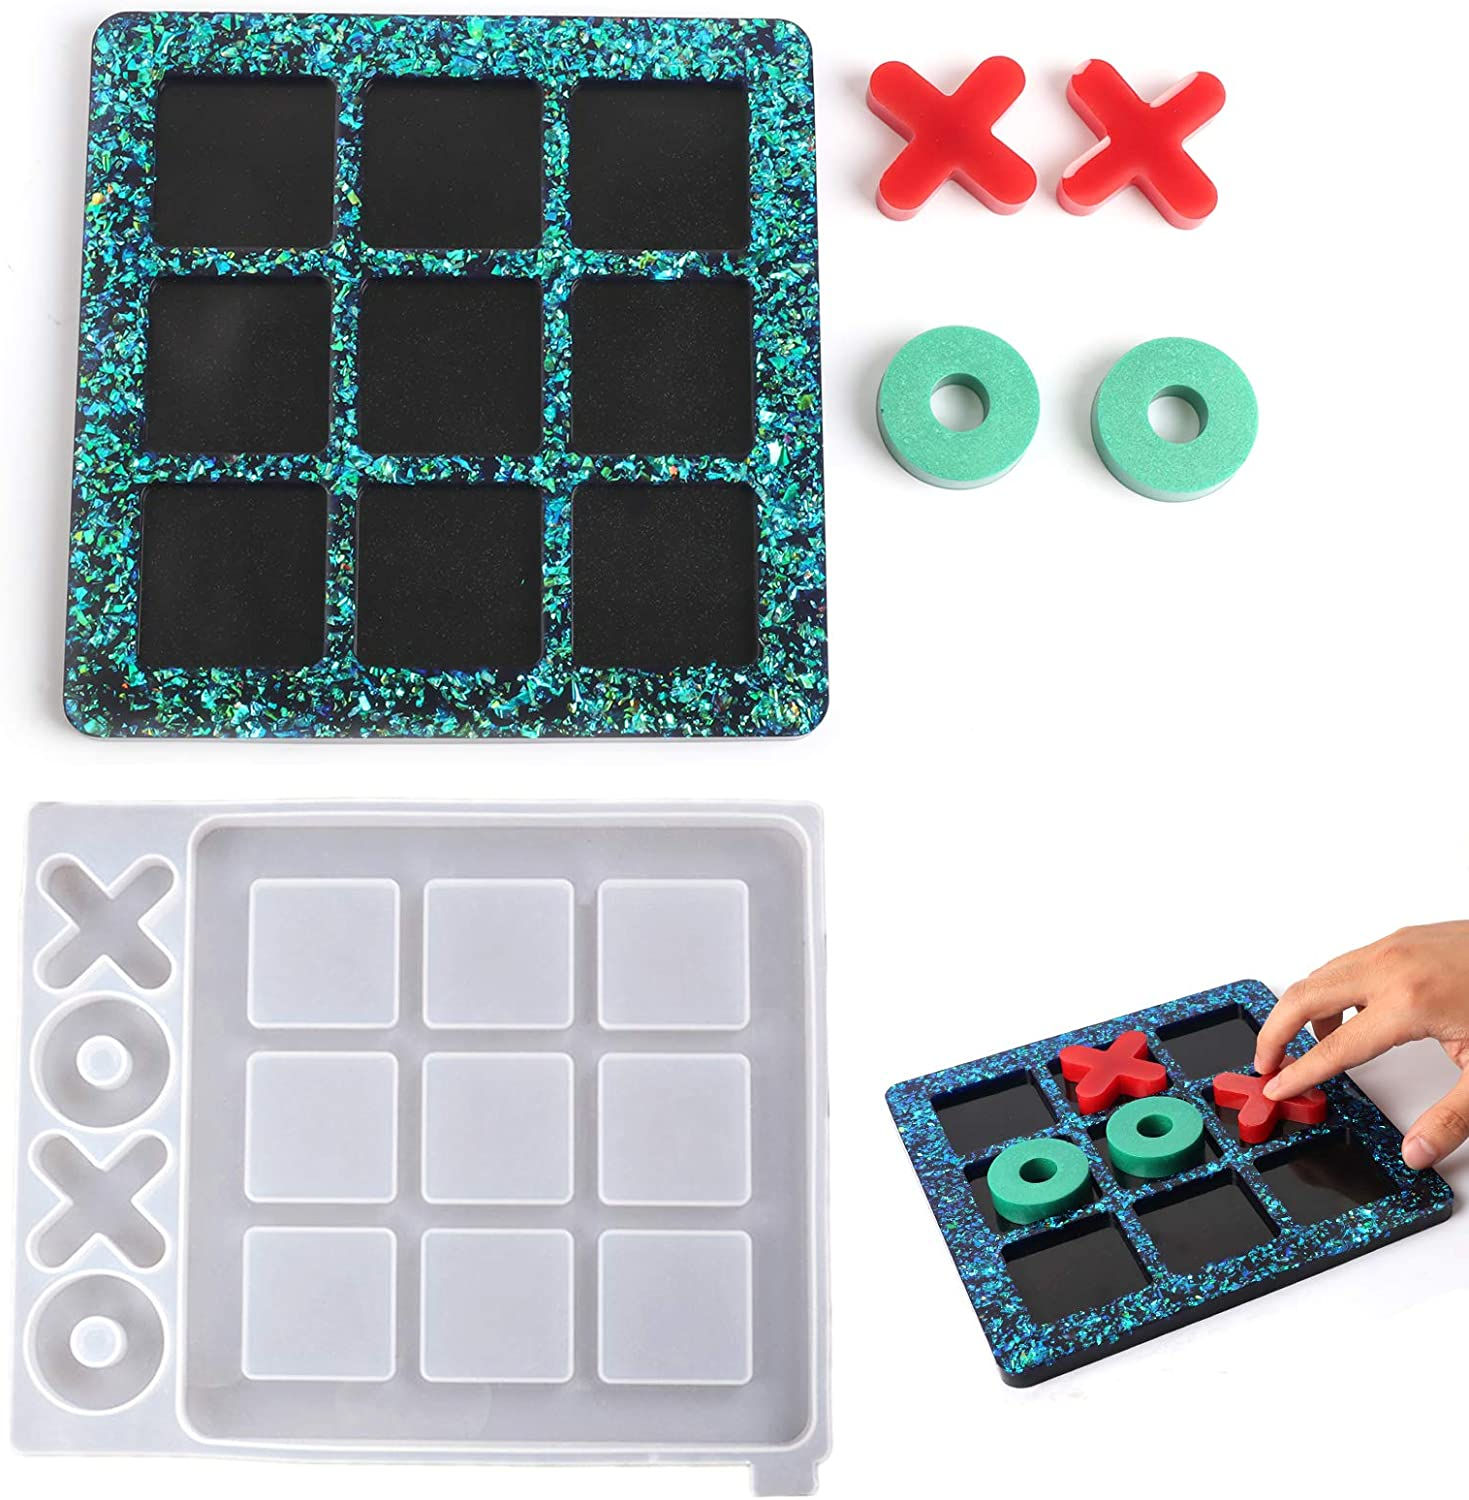 Tic-tac-Toe Resin Molds Silicone Mold Charlotte Mall Kit Making for 5 ☆ very popular Nough